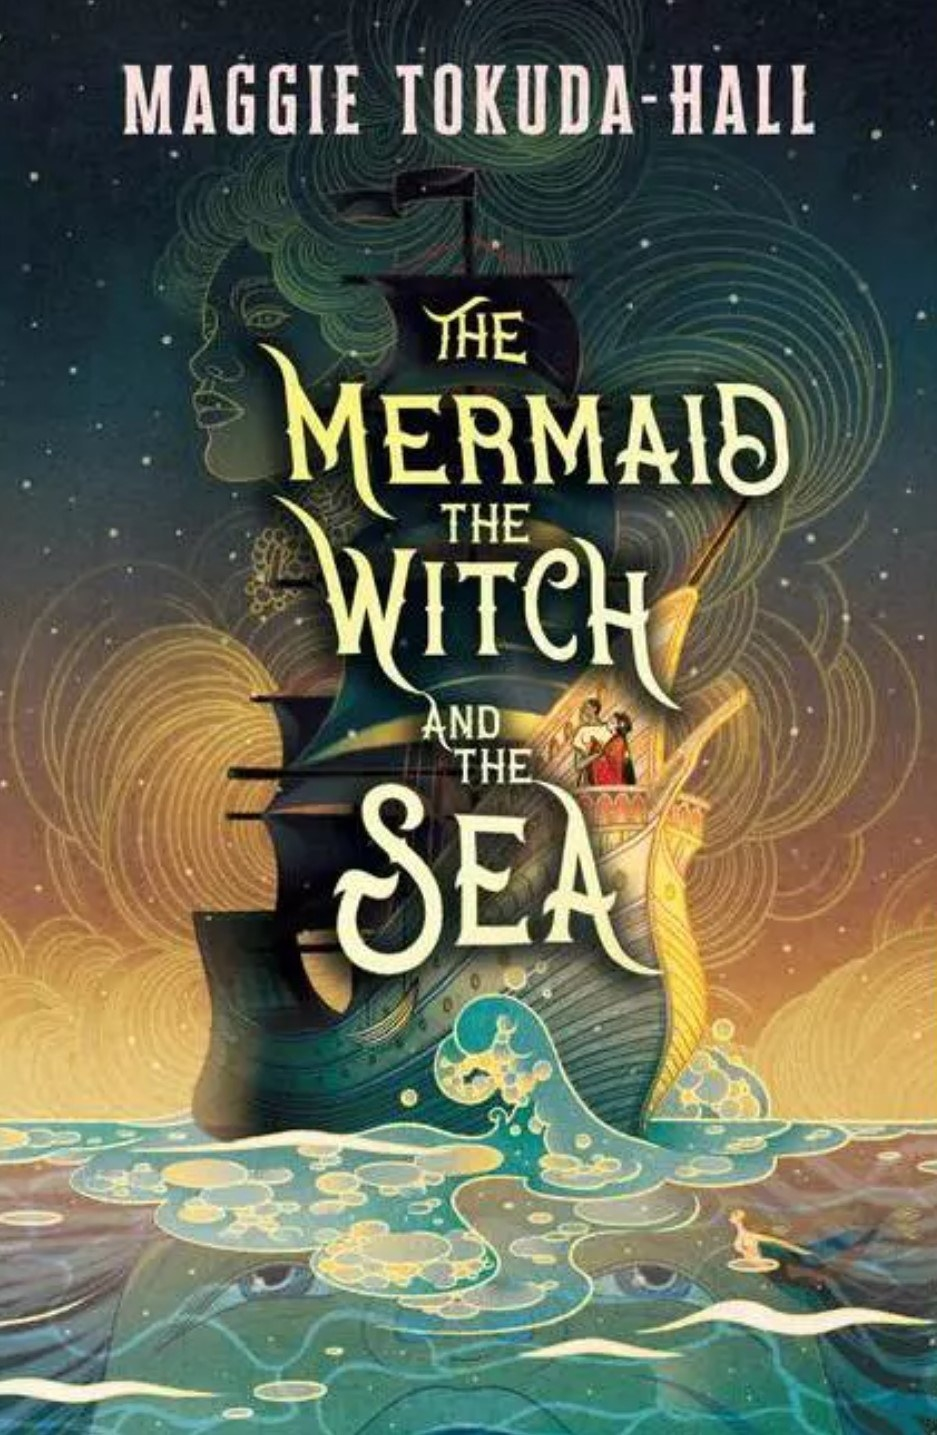 The cover of The Mermaid, The Witch, And The Sea by Maggie Tokuda-Hall